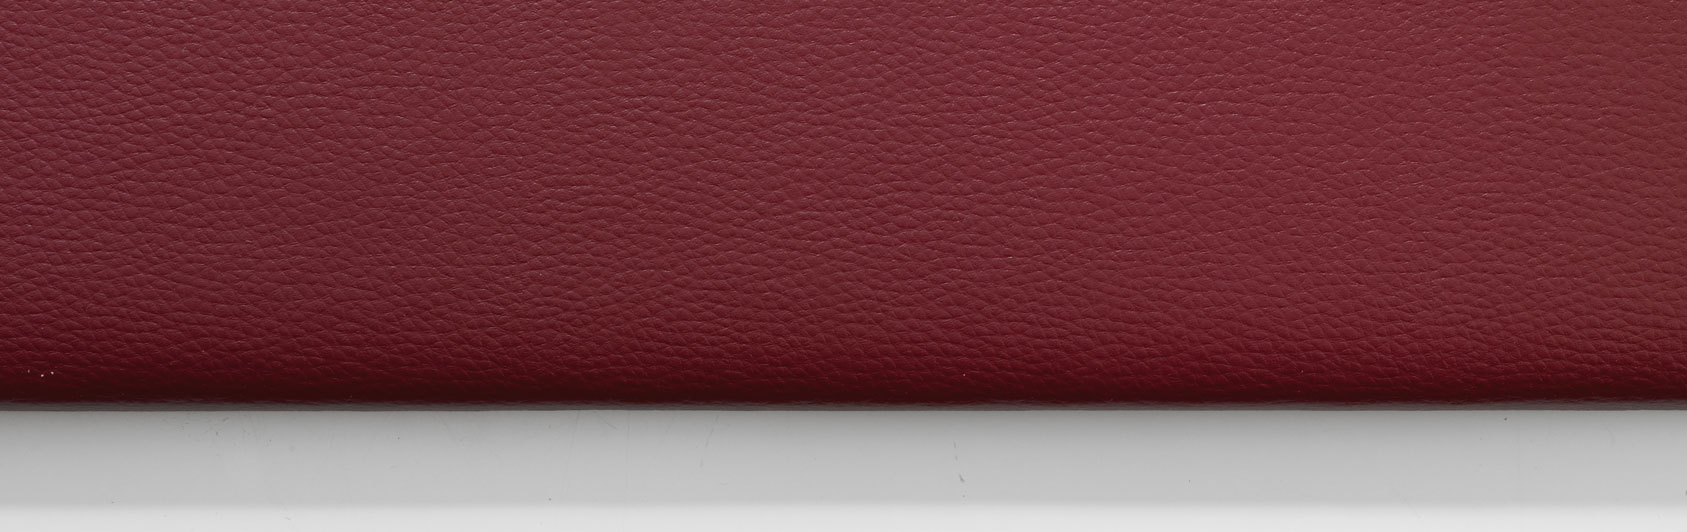 sample hassock faux leather color code 4348 color red